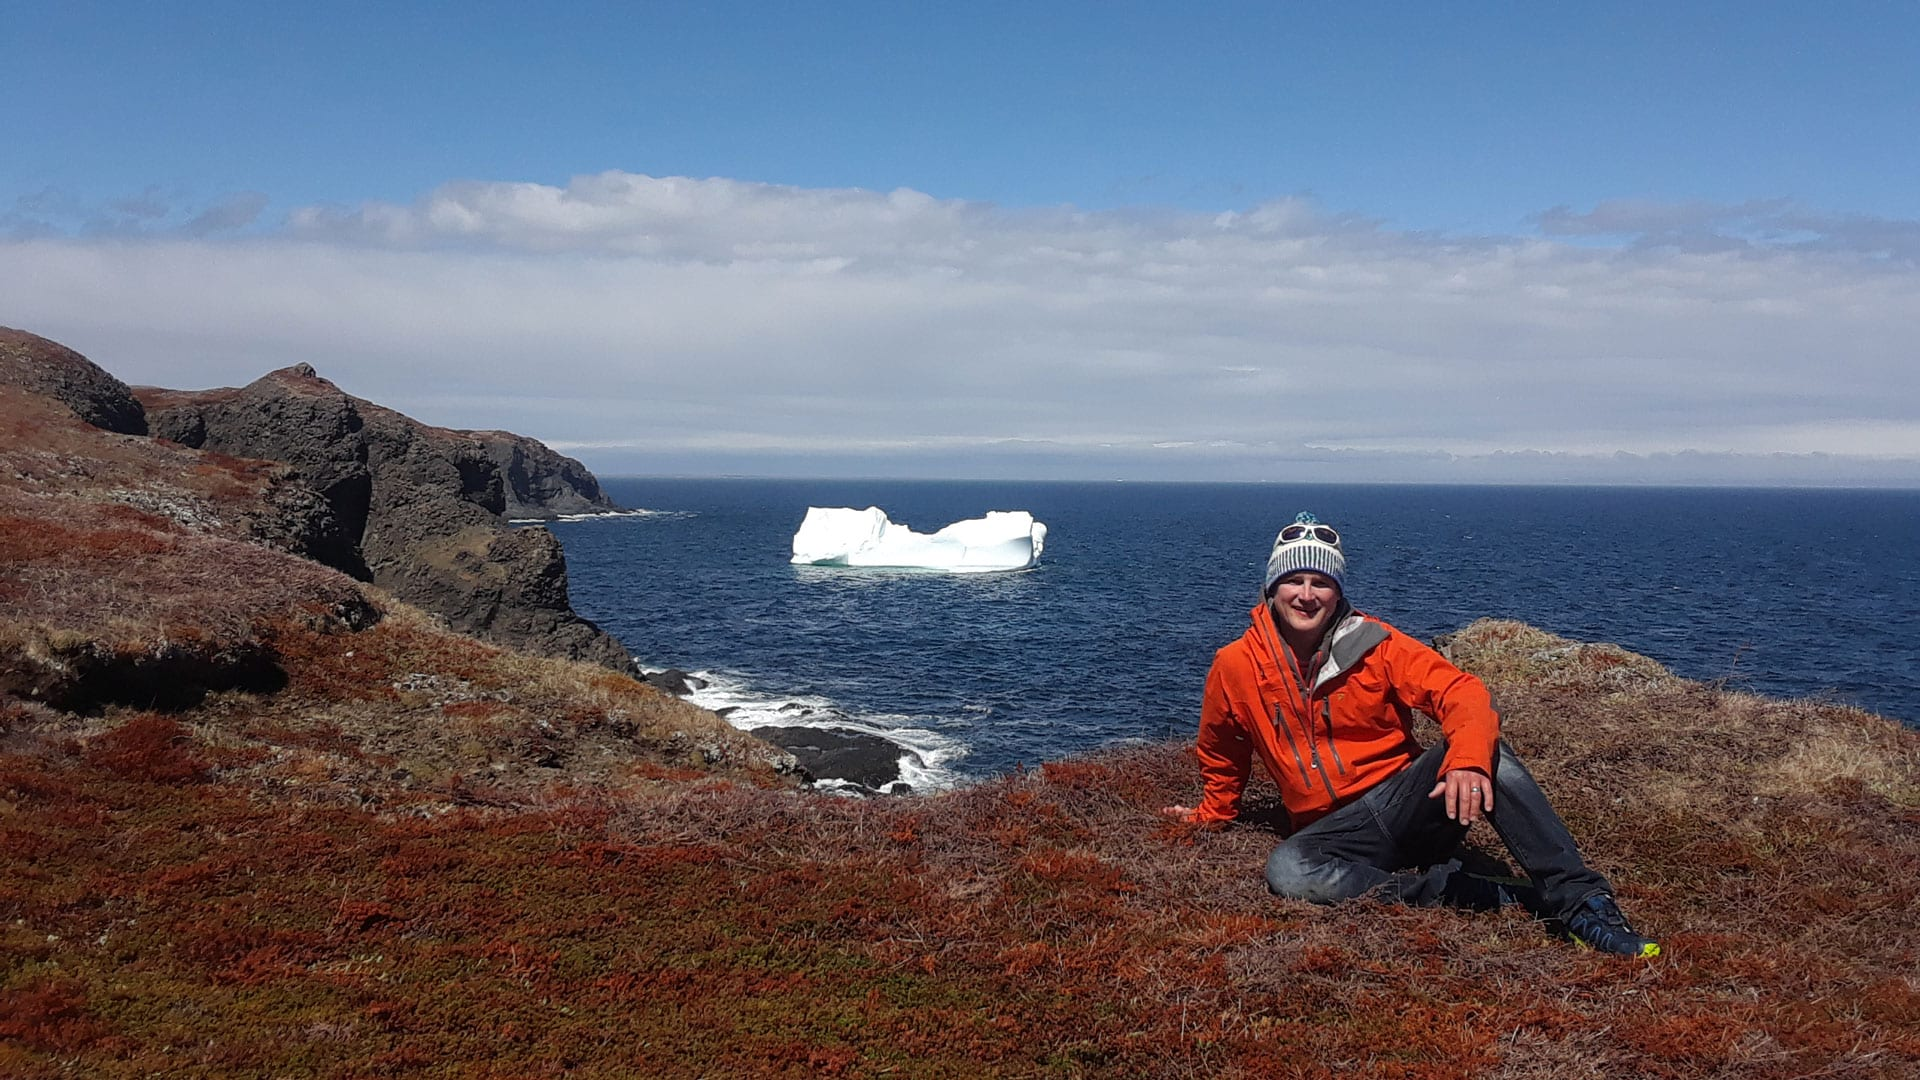 WHOI climate scientist Alan Condron examines an iceberg drifting south in the Labrador Sea. (Photo by Andrew Daly, © Woods Hole Oceanographic Institution)